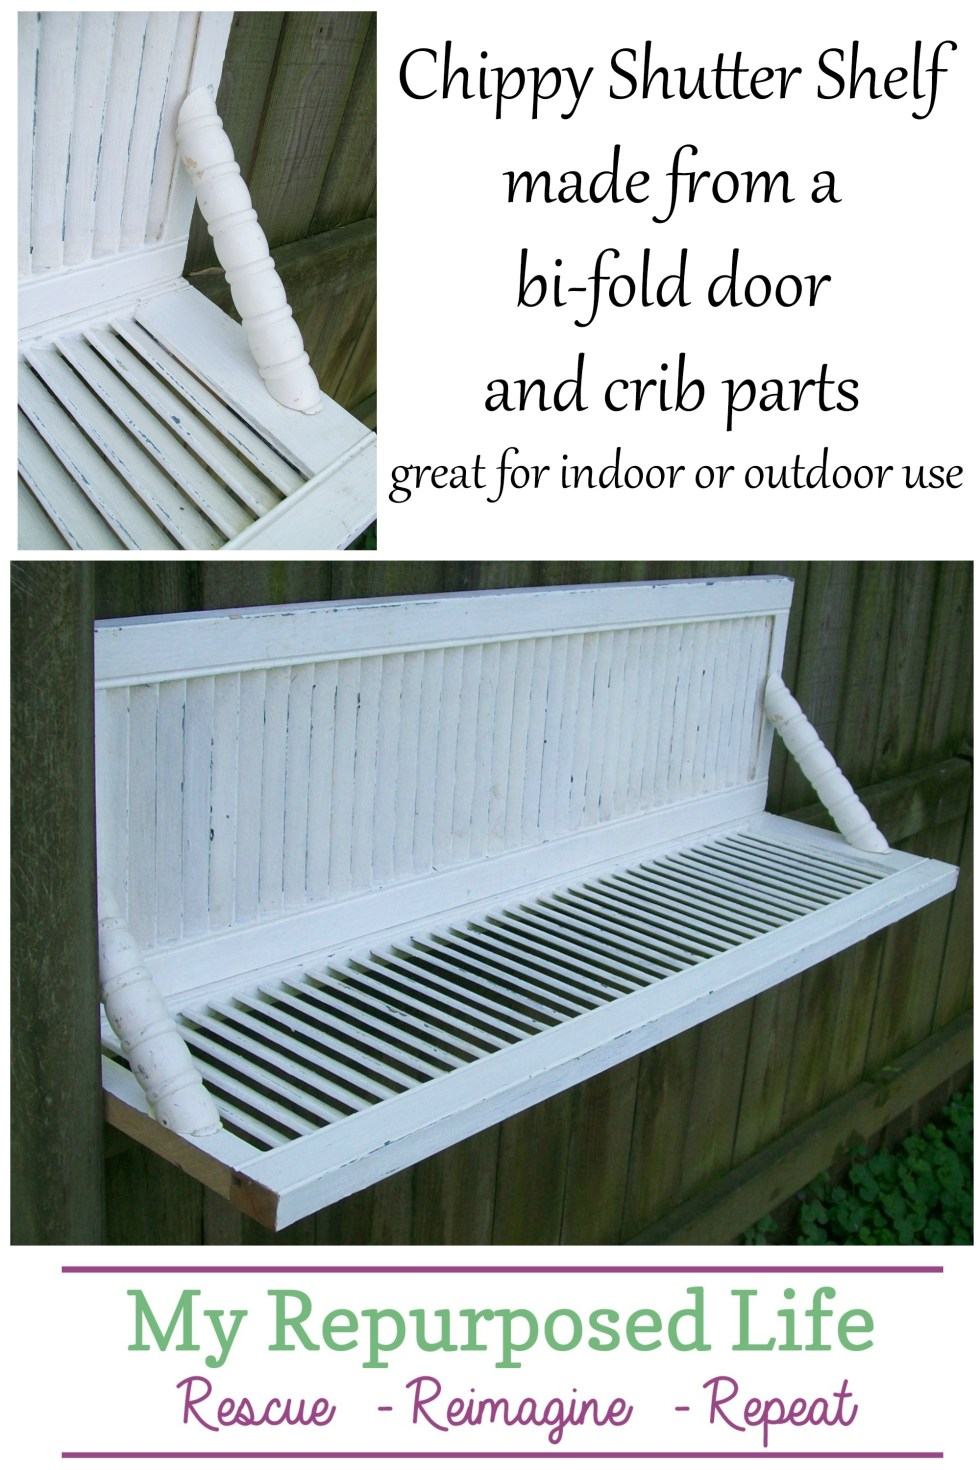 How to make the easiest chippy shutter shelf ever! Shutters can be hard to find and expensive. No problem! Use a bi-fold door instead of shutters. Easy! #MyRepurposedLife #repurposed #shutter #shelf #upcycle #indoors #outdoors #project via @repurposedlife